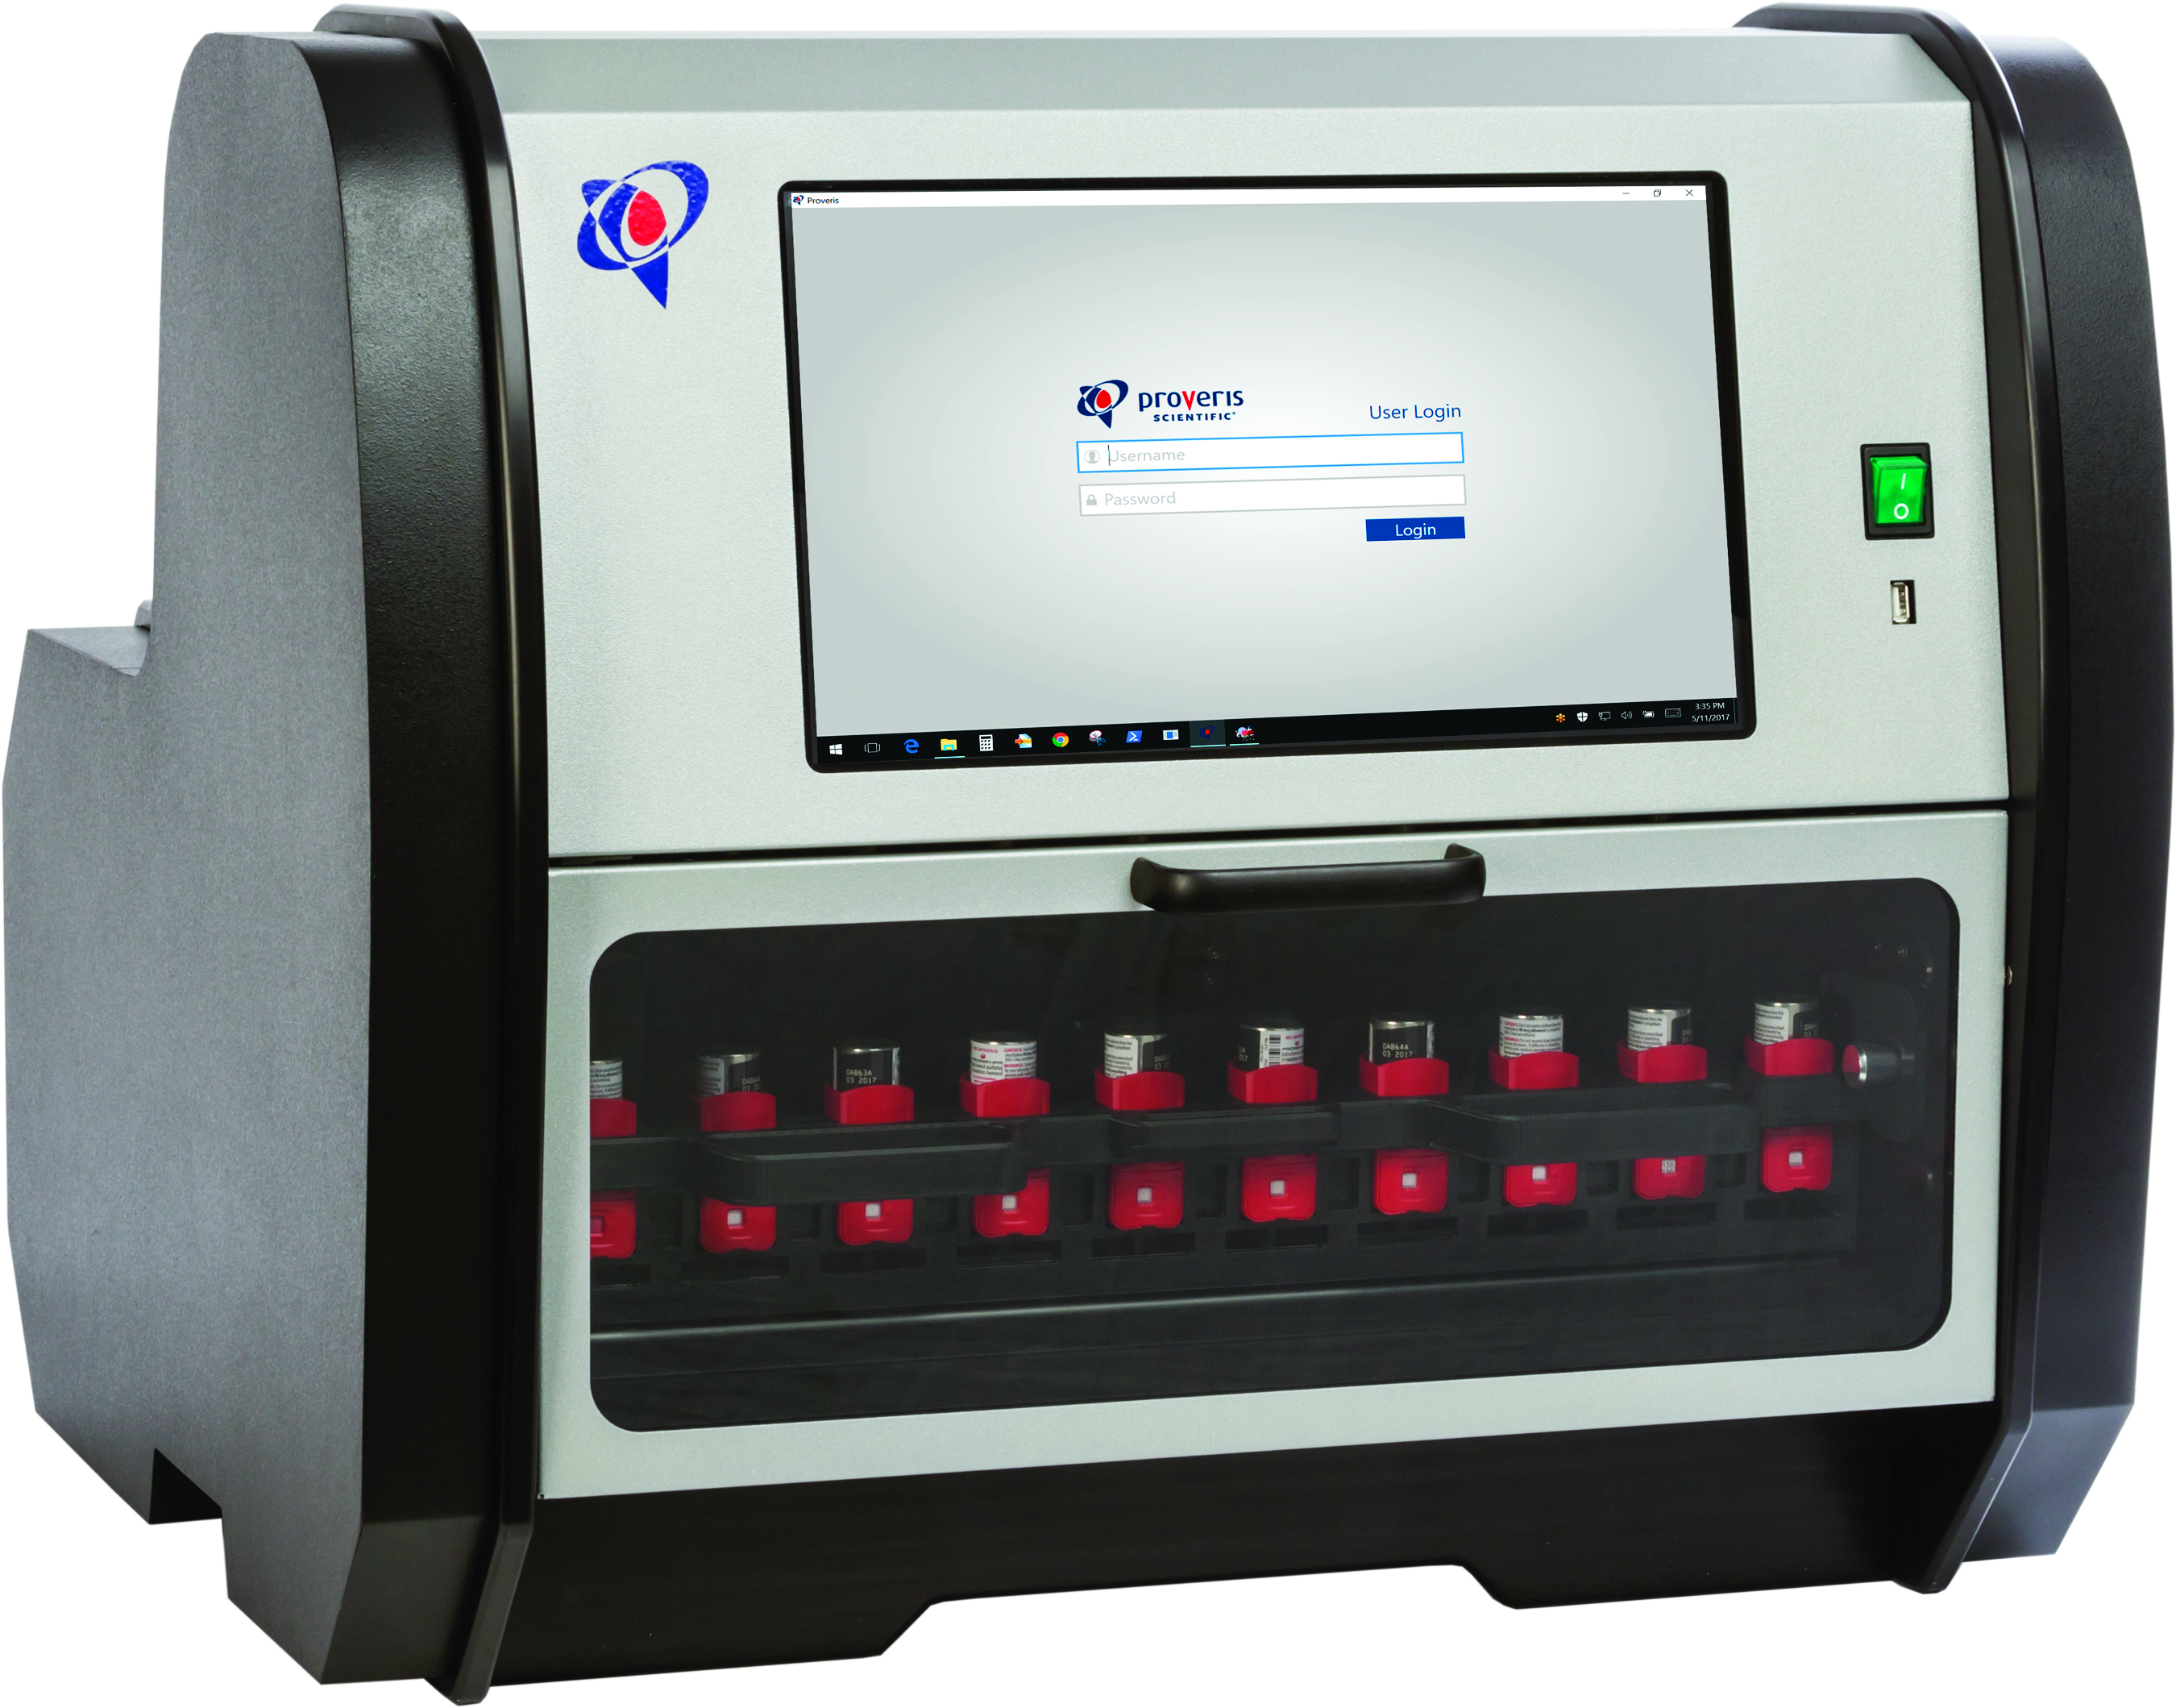 Kinaero High-Throughput pMDI Fire-Down System